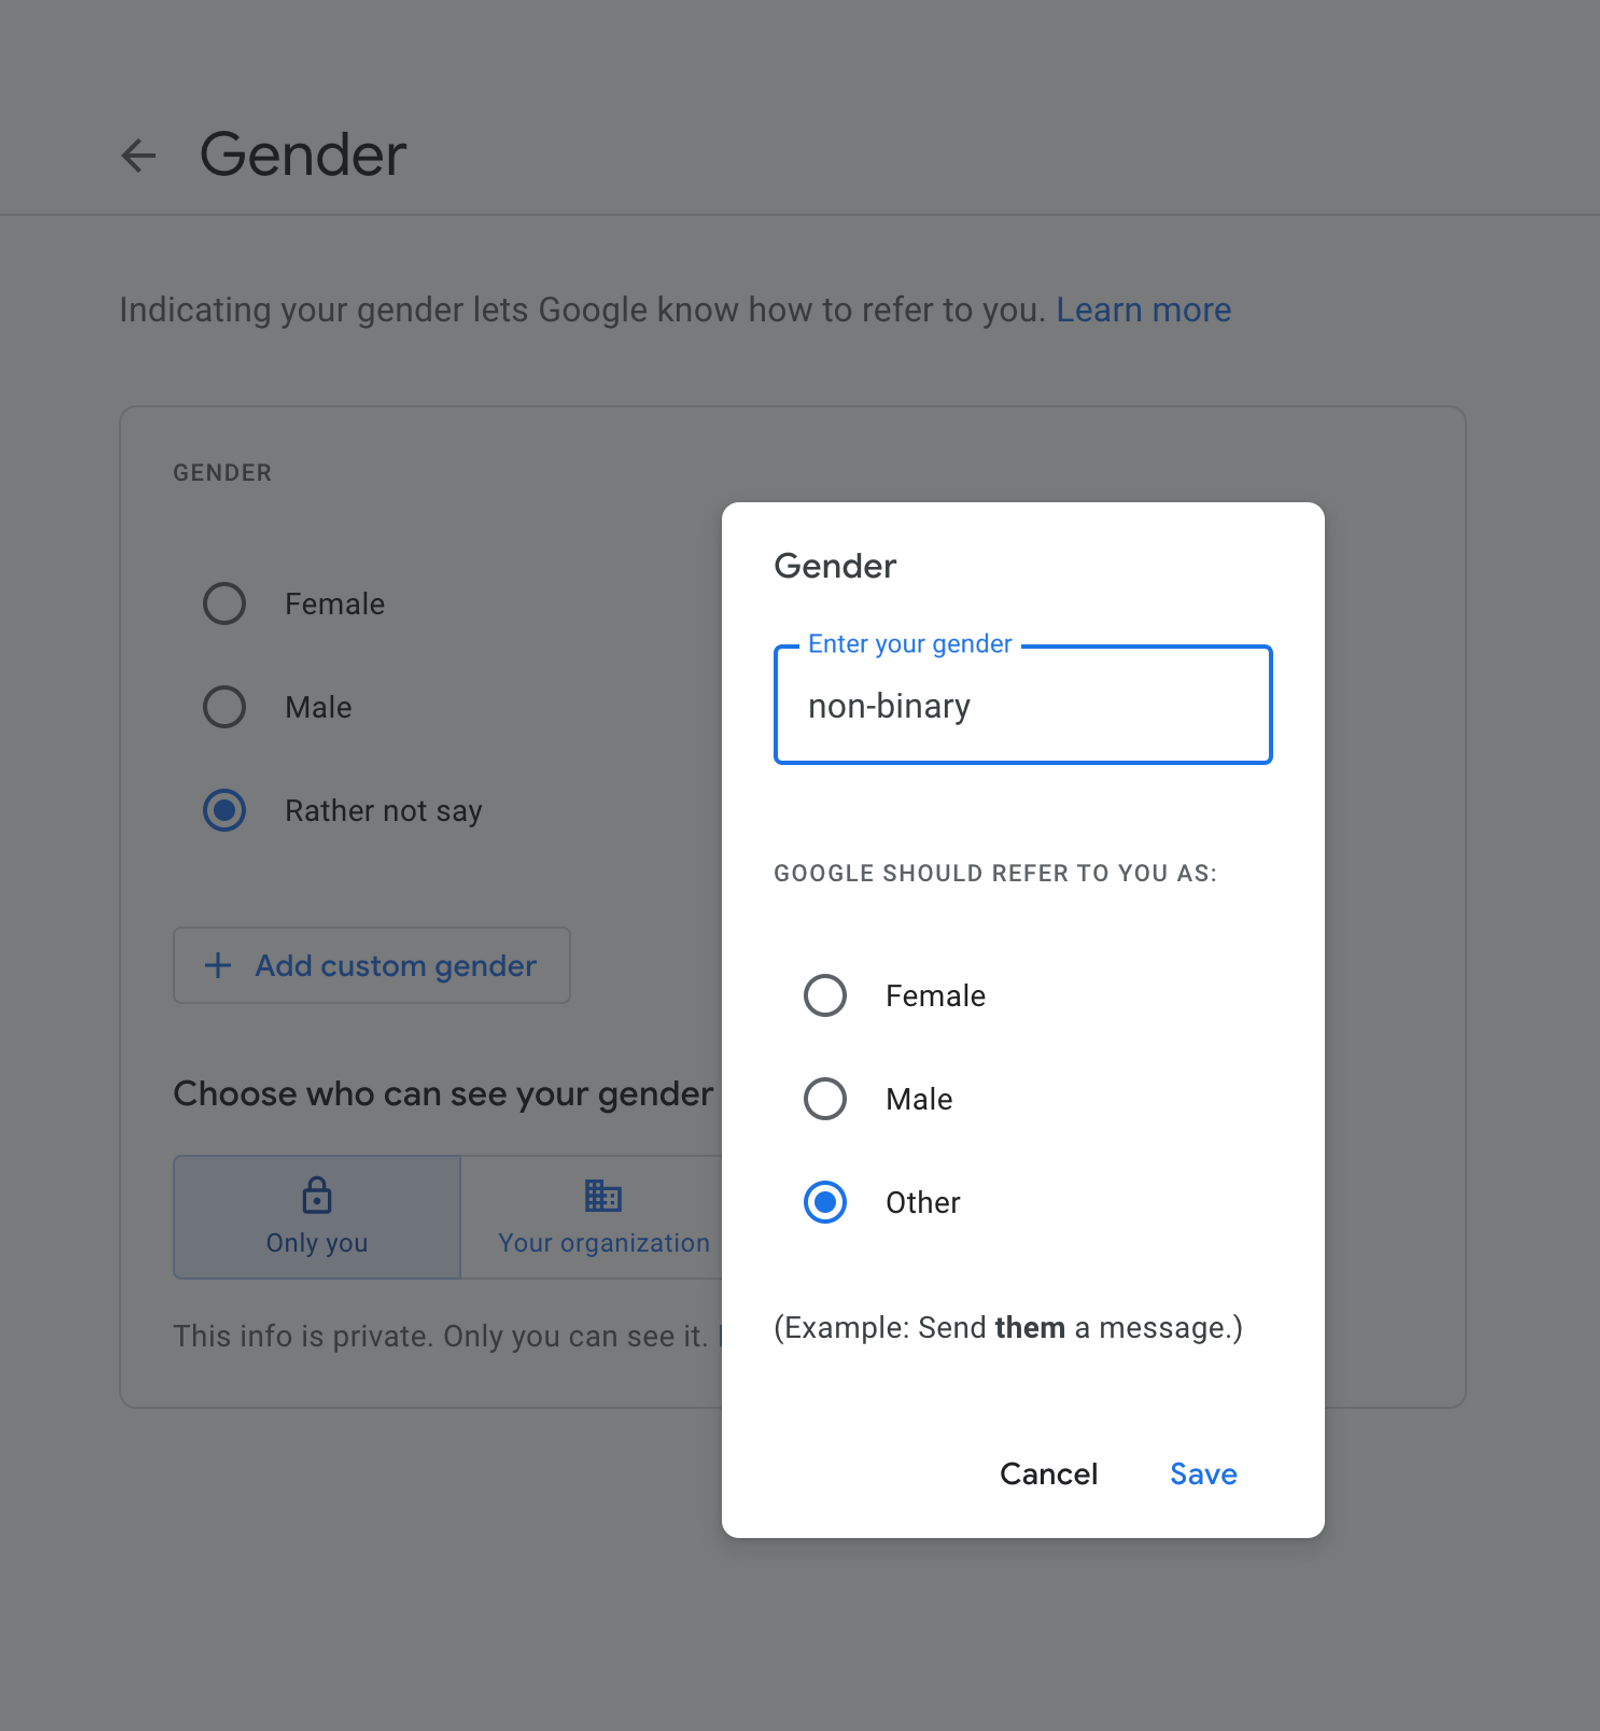 Gender selection box, custom gender is chosen, pop-up with free text field for gender (non-binary entered) and 3 choices for pronouns: female, male, other